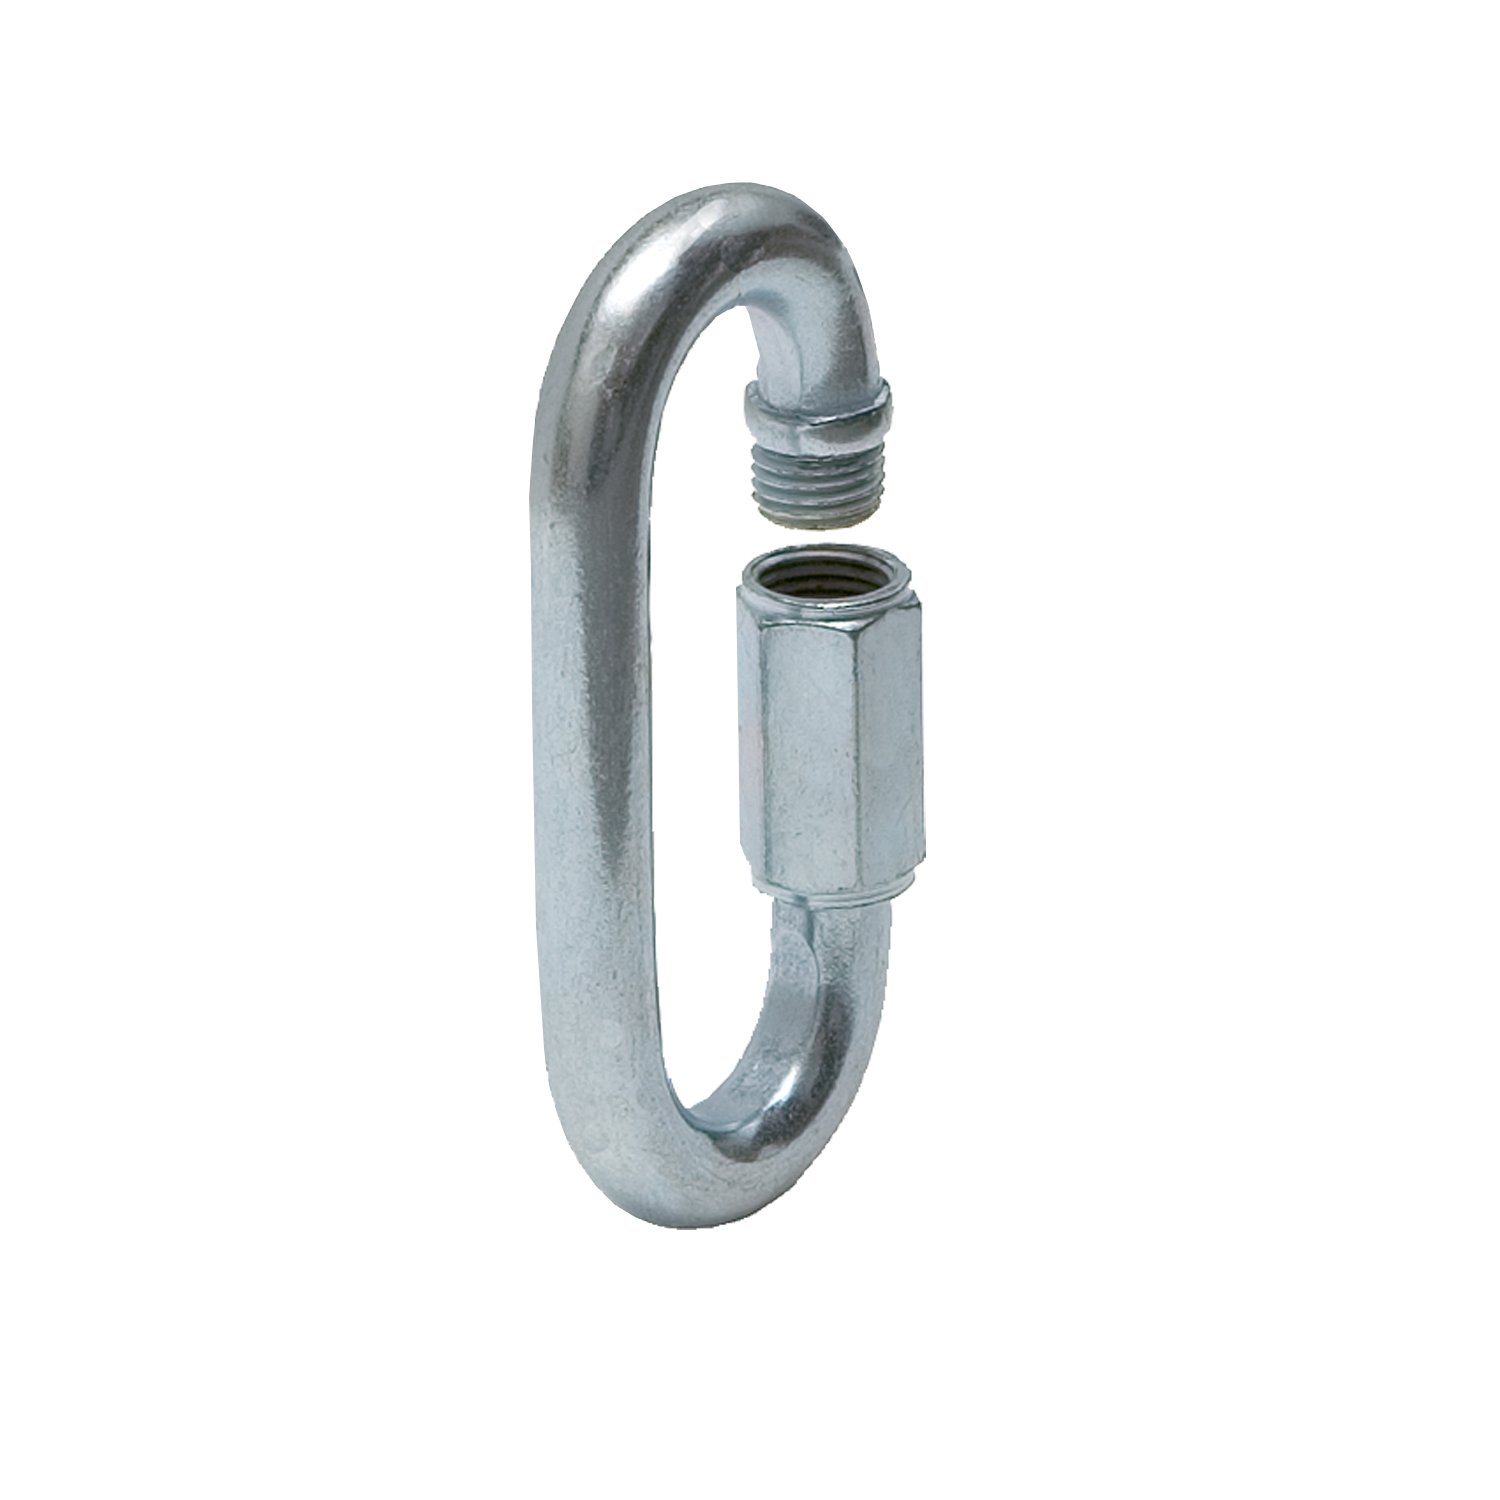 Koch 093291 Quick Link, Size 3/8-Inch, Zinc Plated